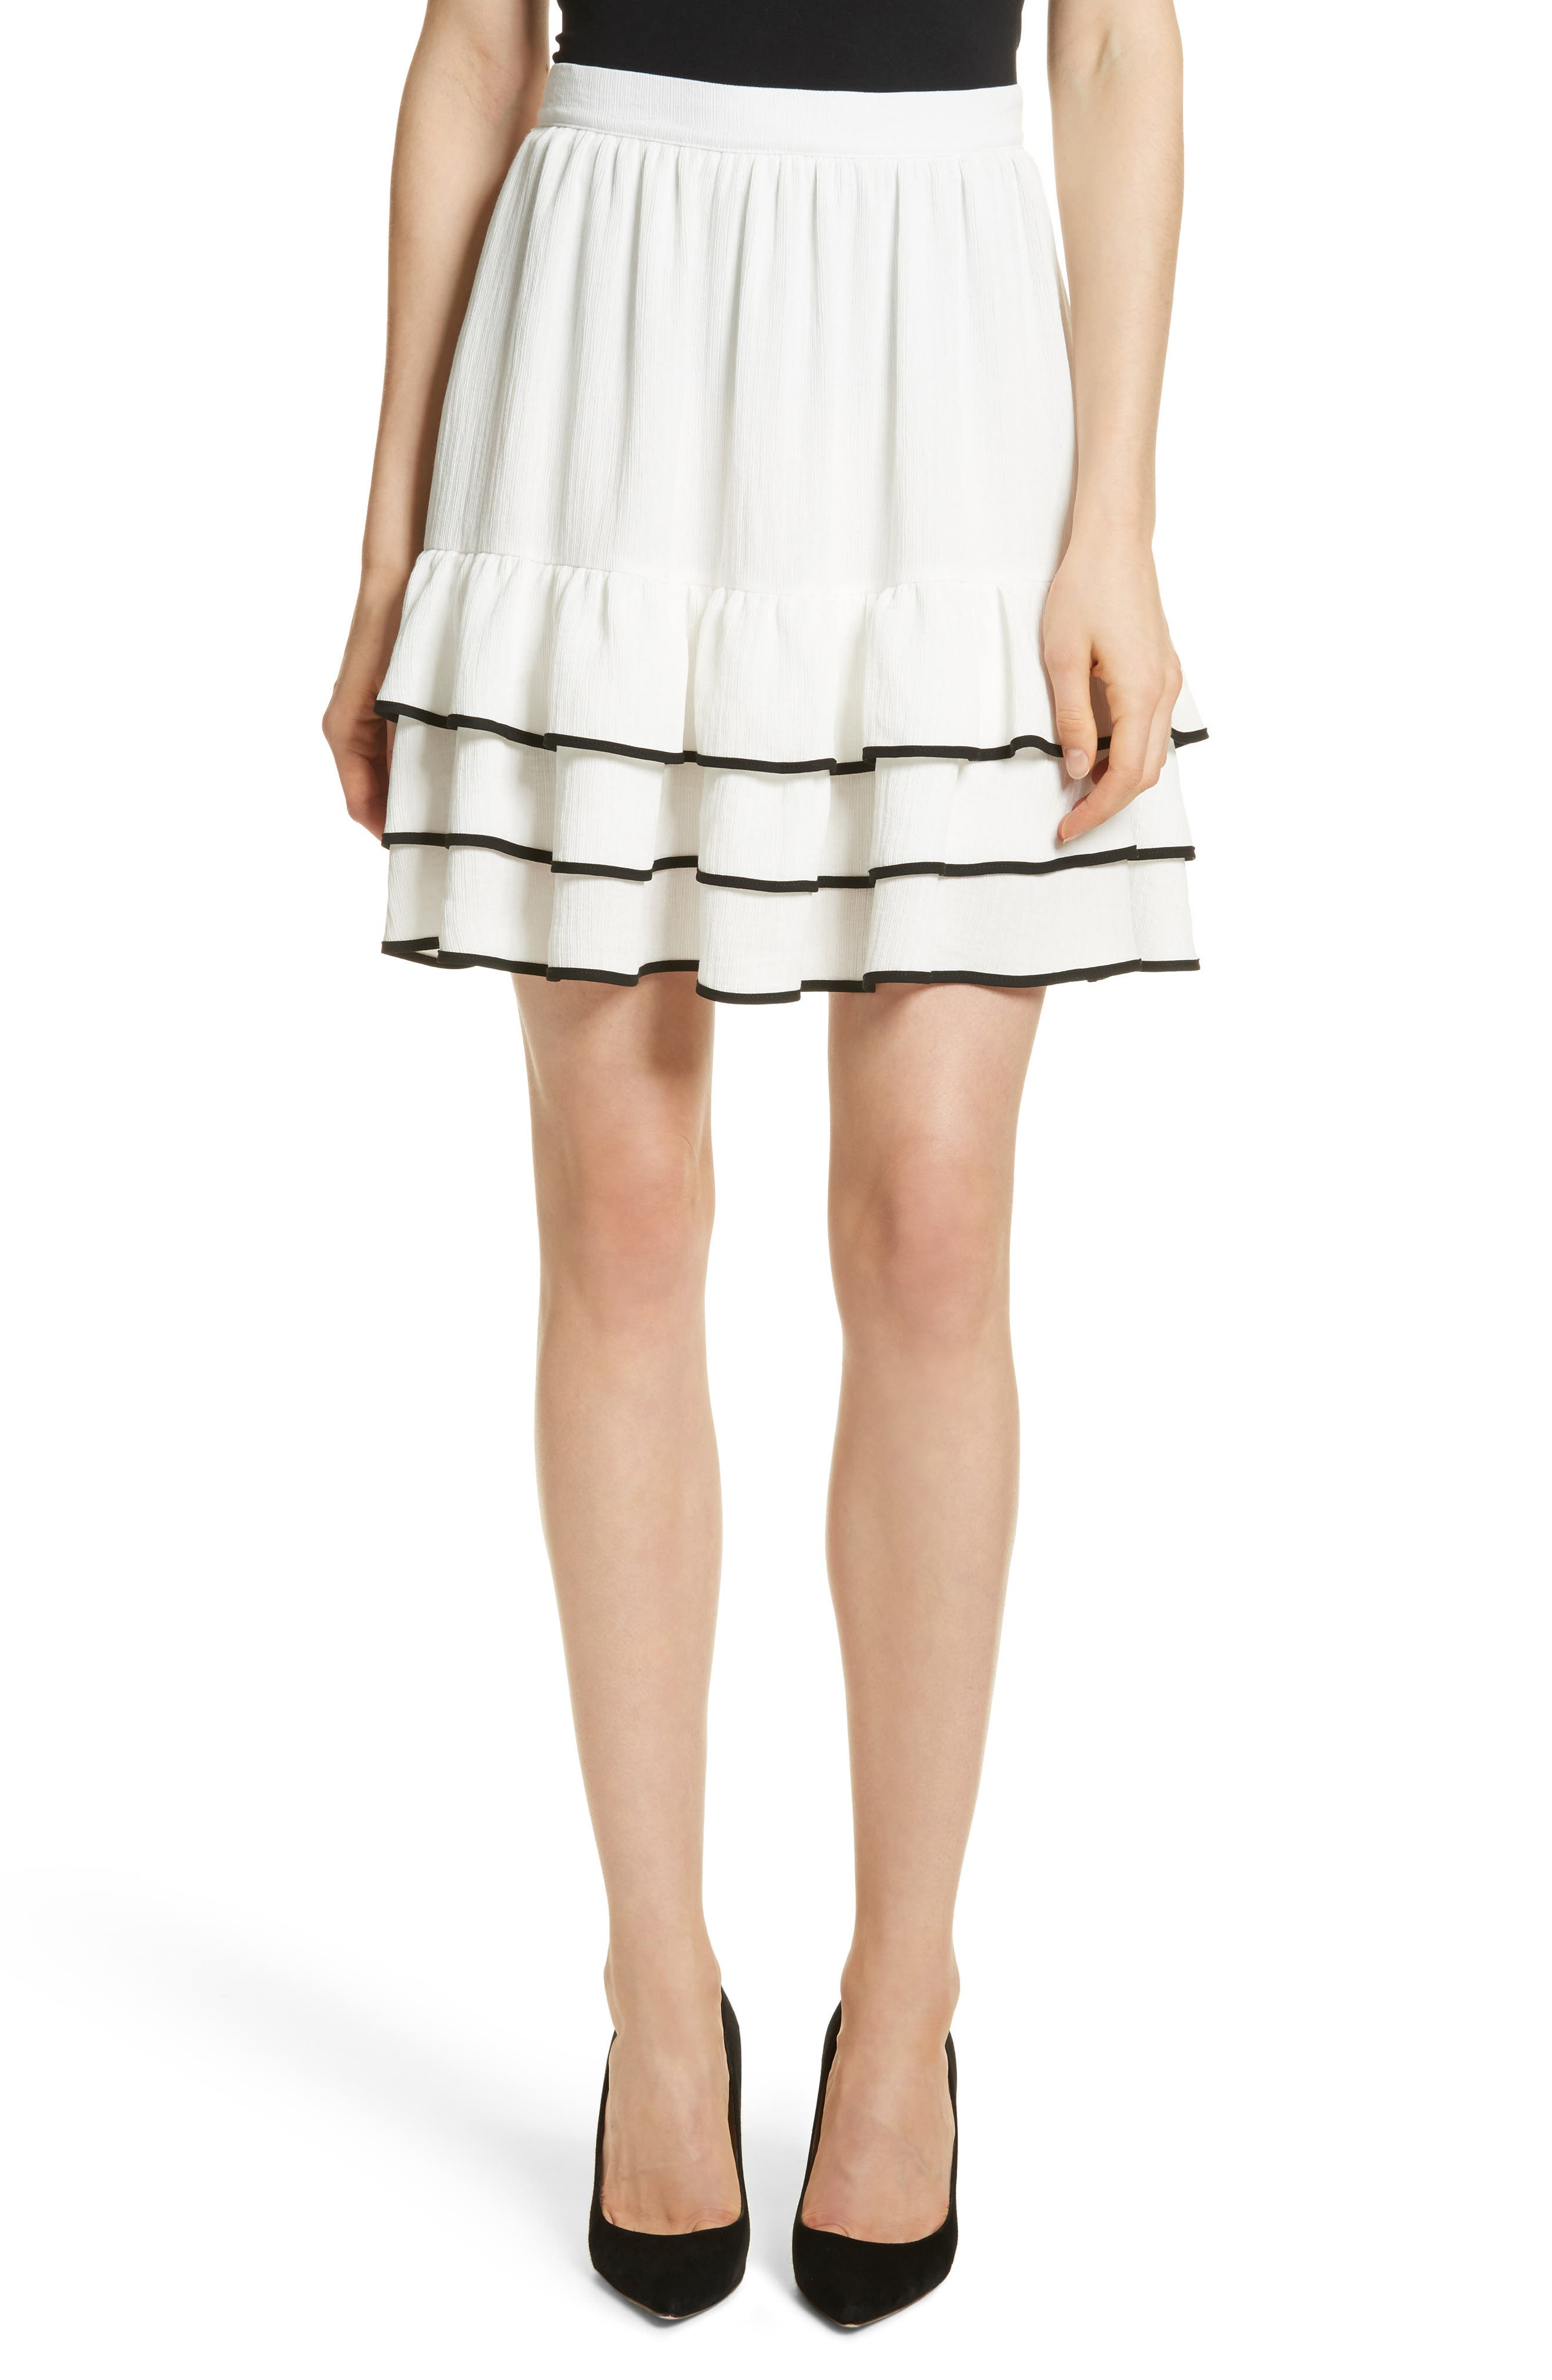 Prose & Poetry Carice Ruffle Miniskirt,                             Main thumbnail 1, color,                             Alabaster